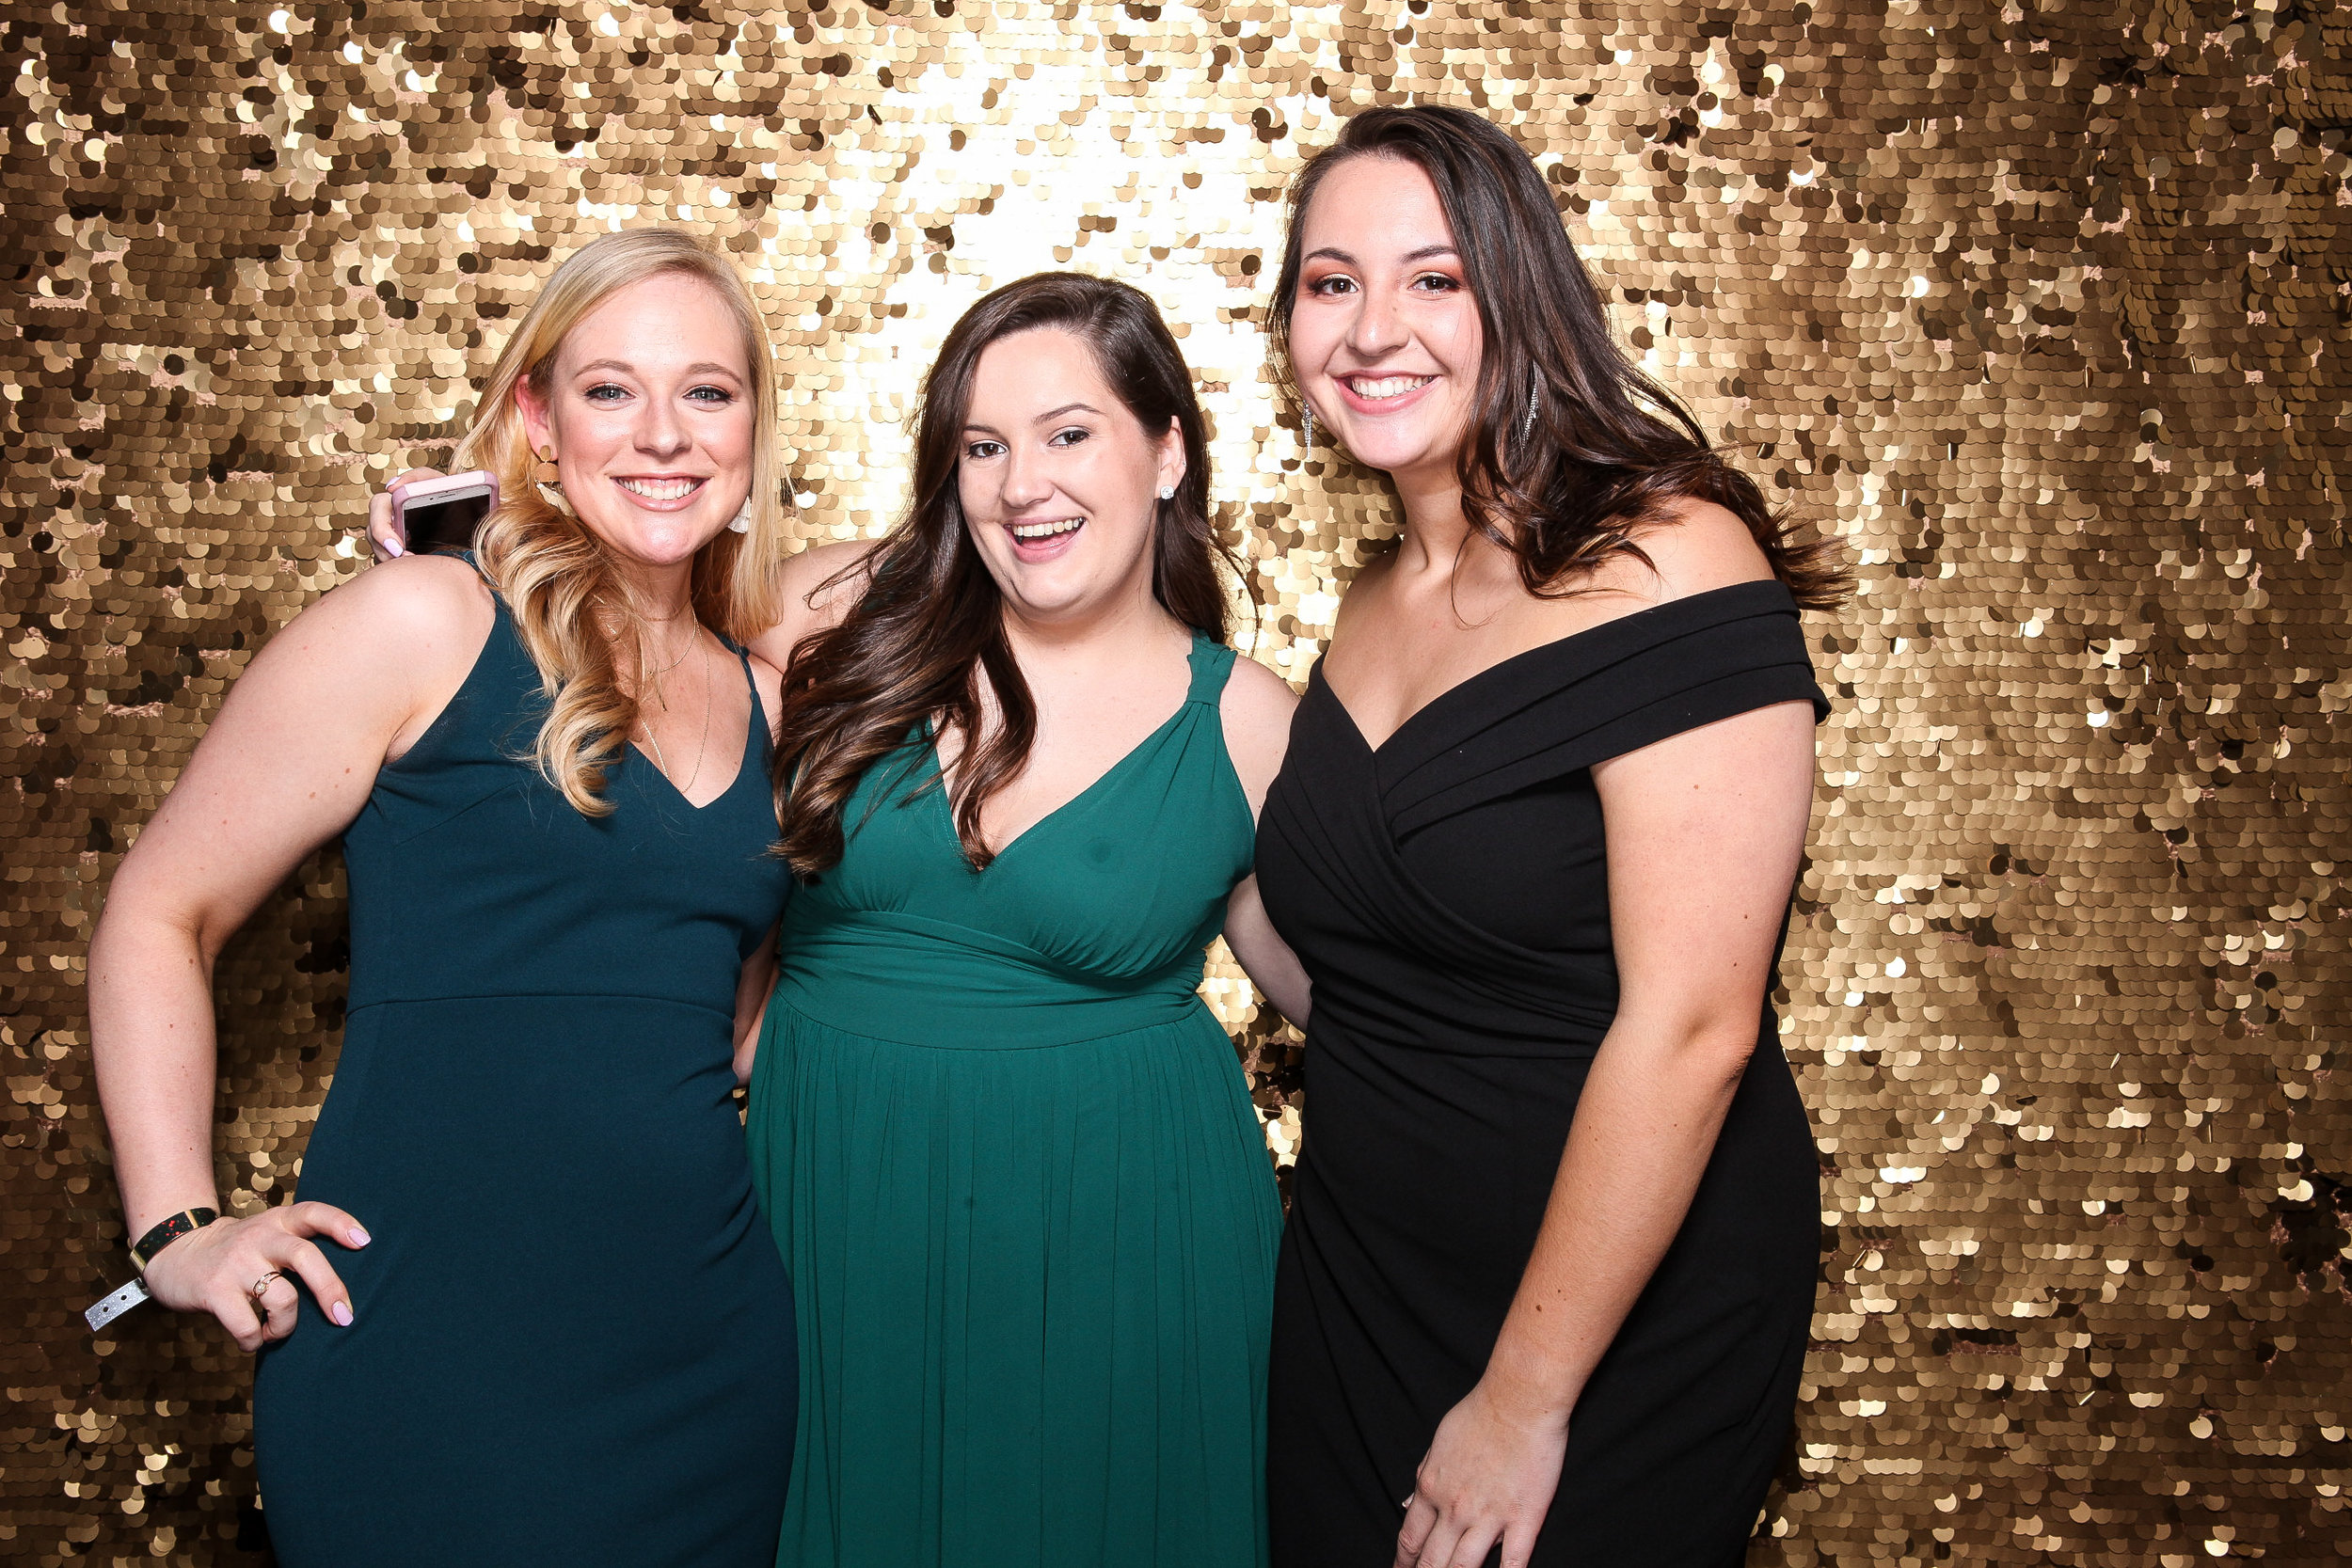 20190503_Adelphi_Senior_Formal-056.jpg